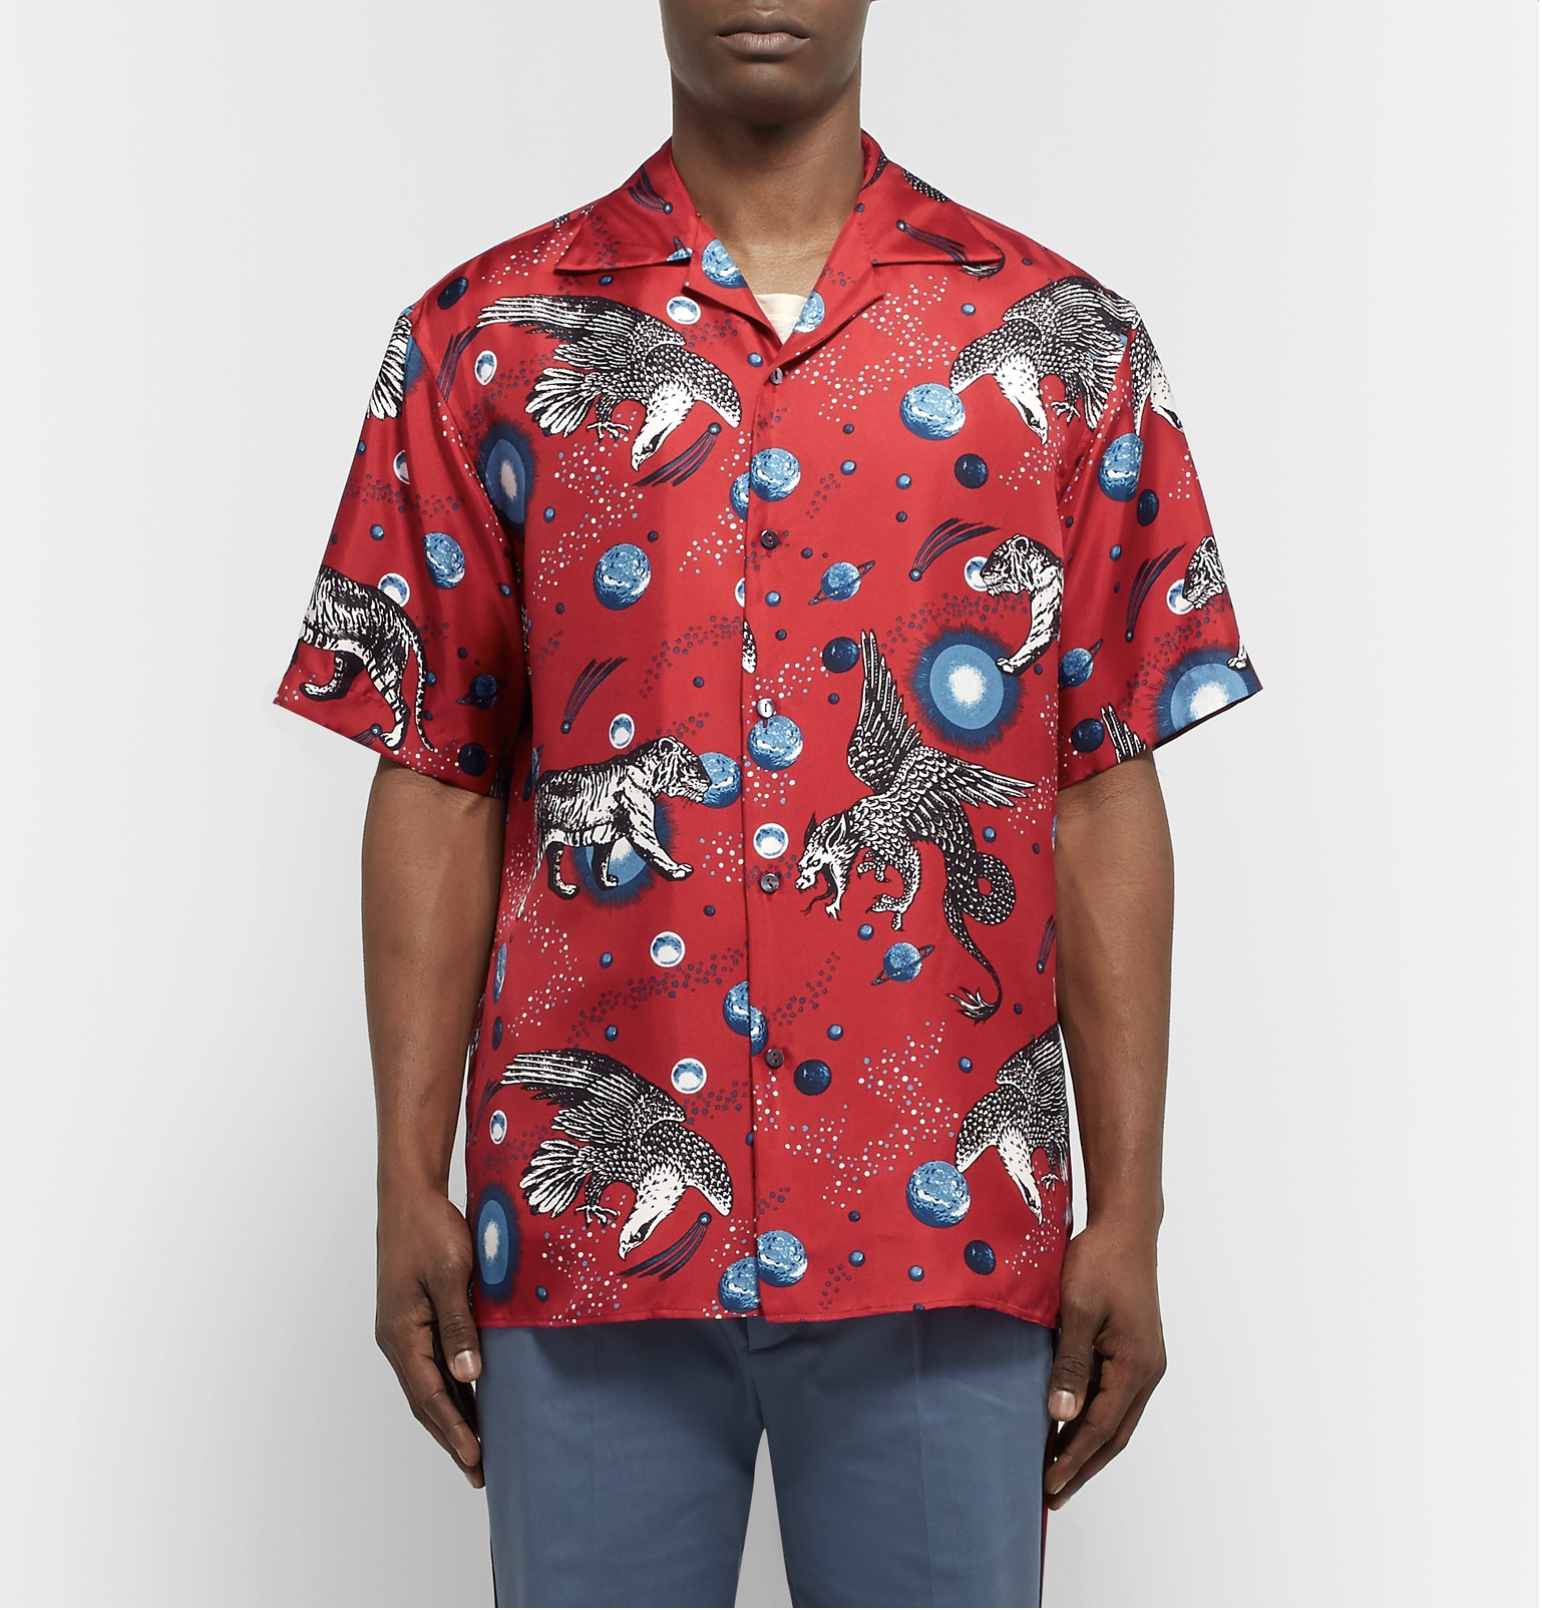 cb0ac505d Gucci Space Animals Printed Shirt / $1040 AUD. SHOP NOW. | DAILY ...